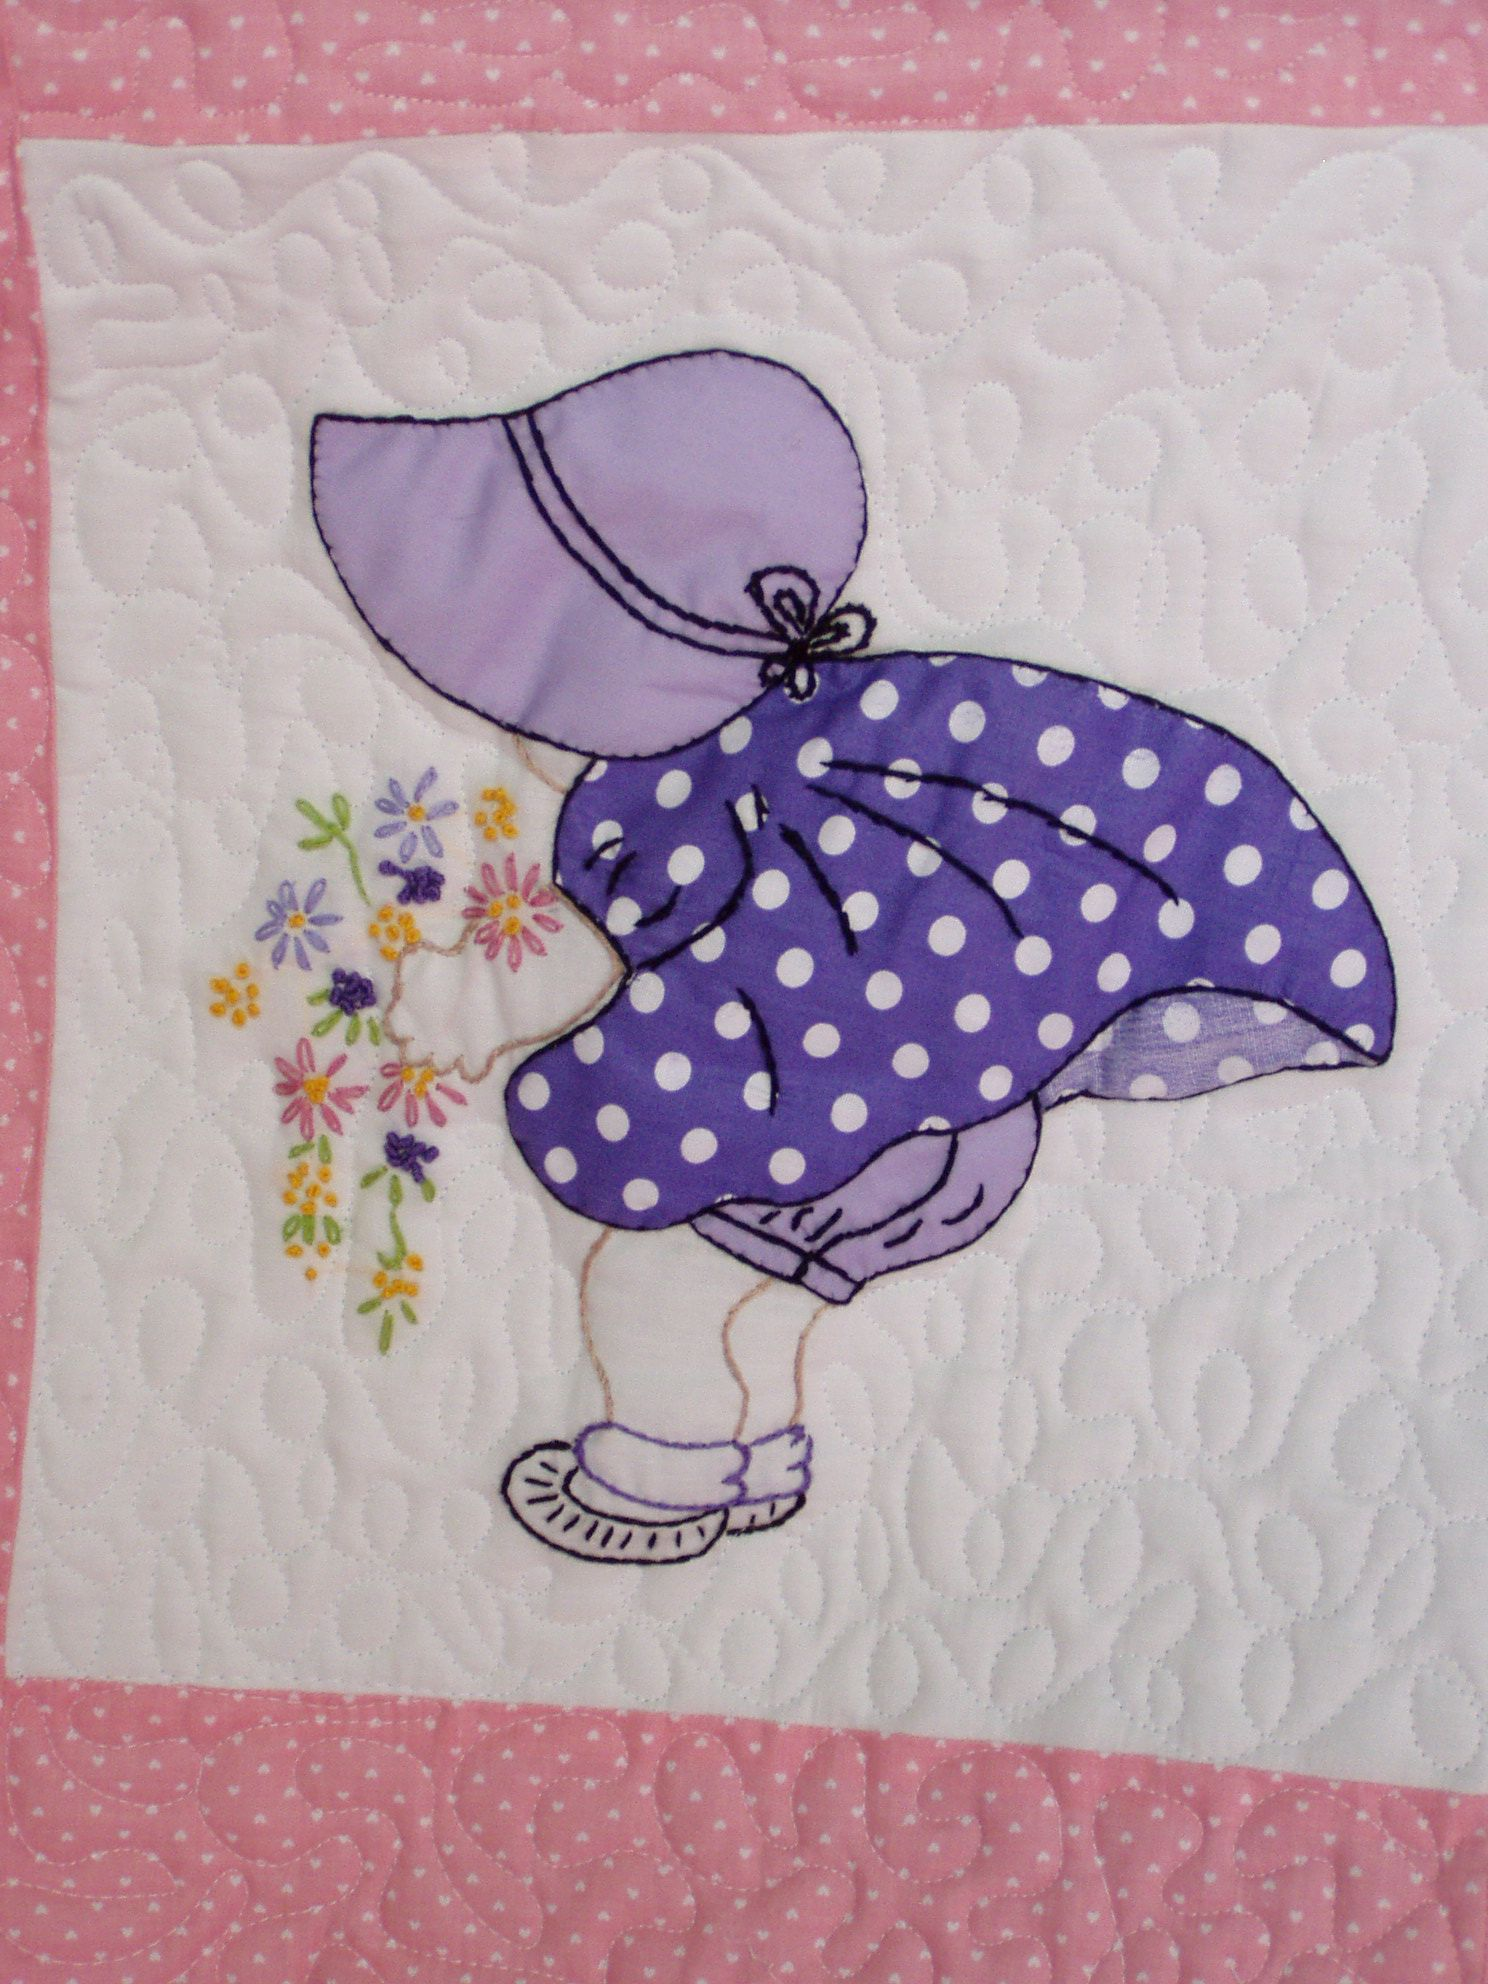 Sun bonnet sue quilt patterns free - Bing Images | quilts and sewing ...